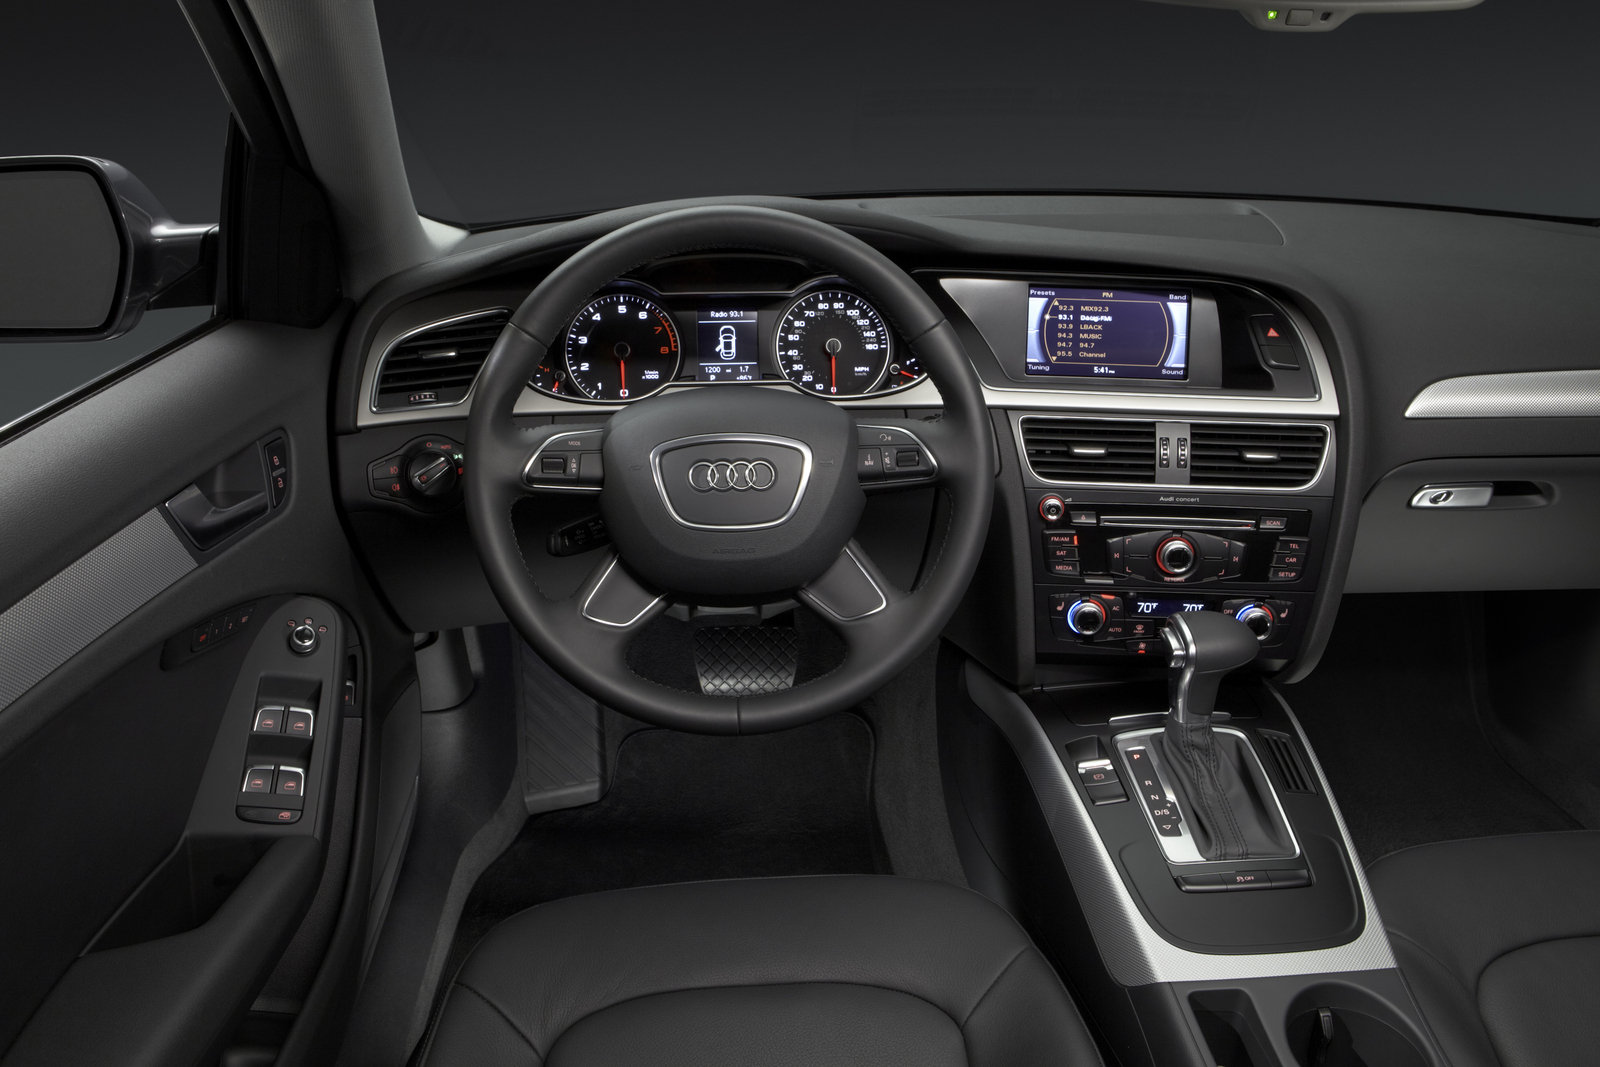 amusing-design-of-the-black-dash-ideas-with-silver-accent-with-black-seats-as-the-audi-a4-2015-interior